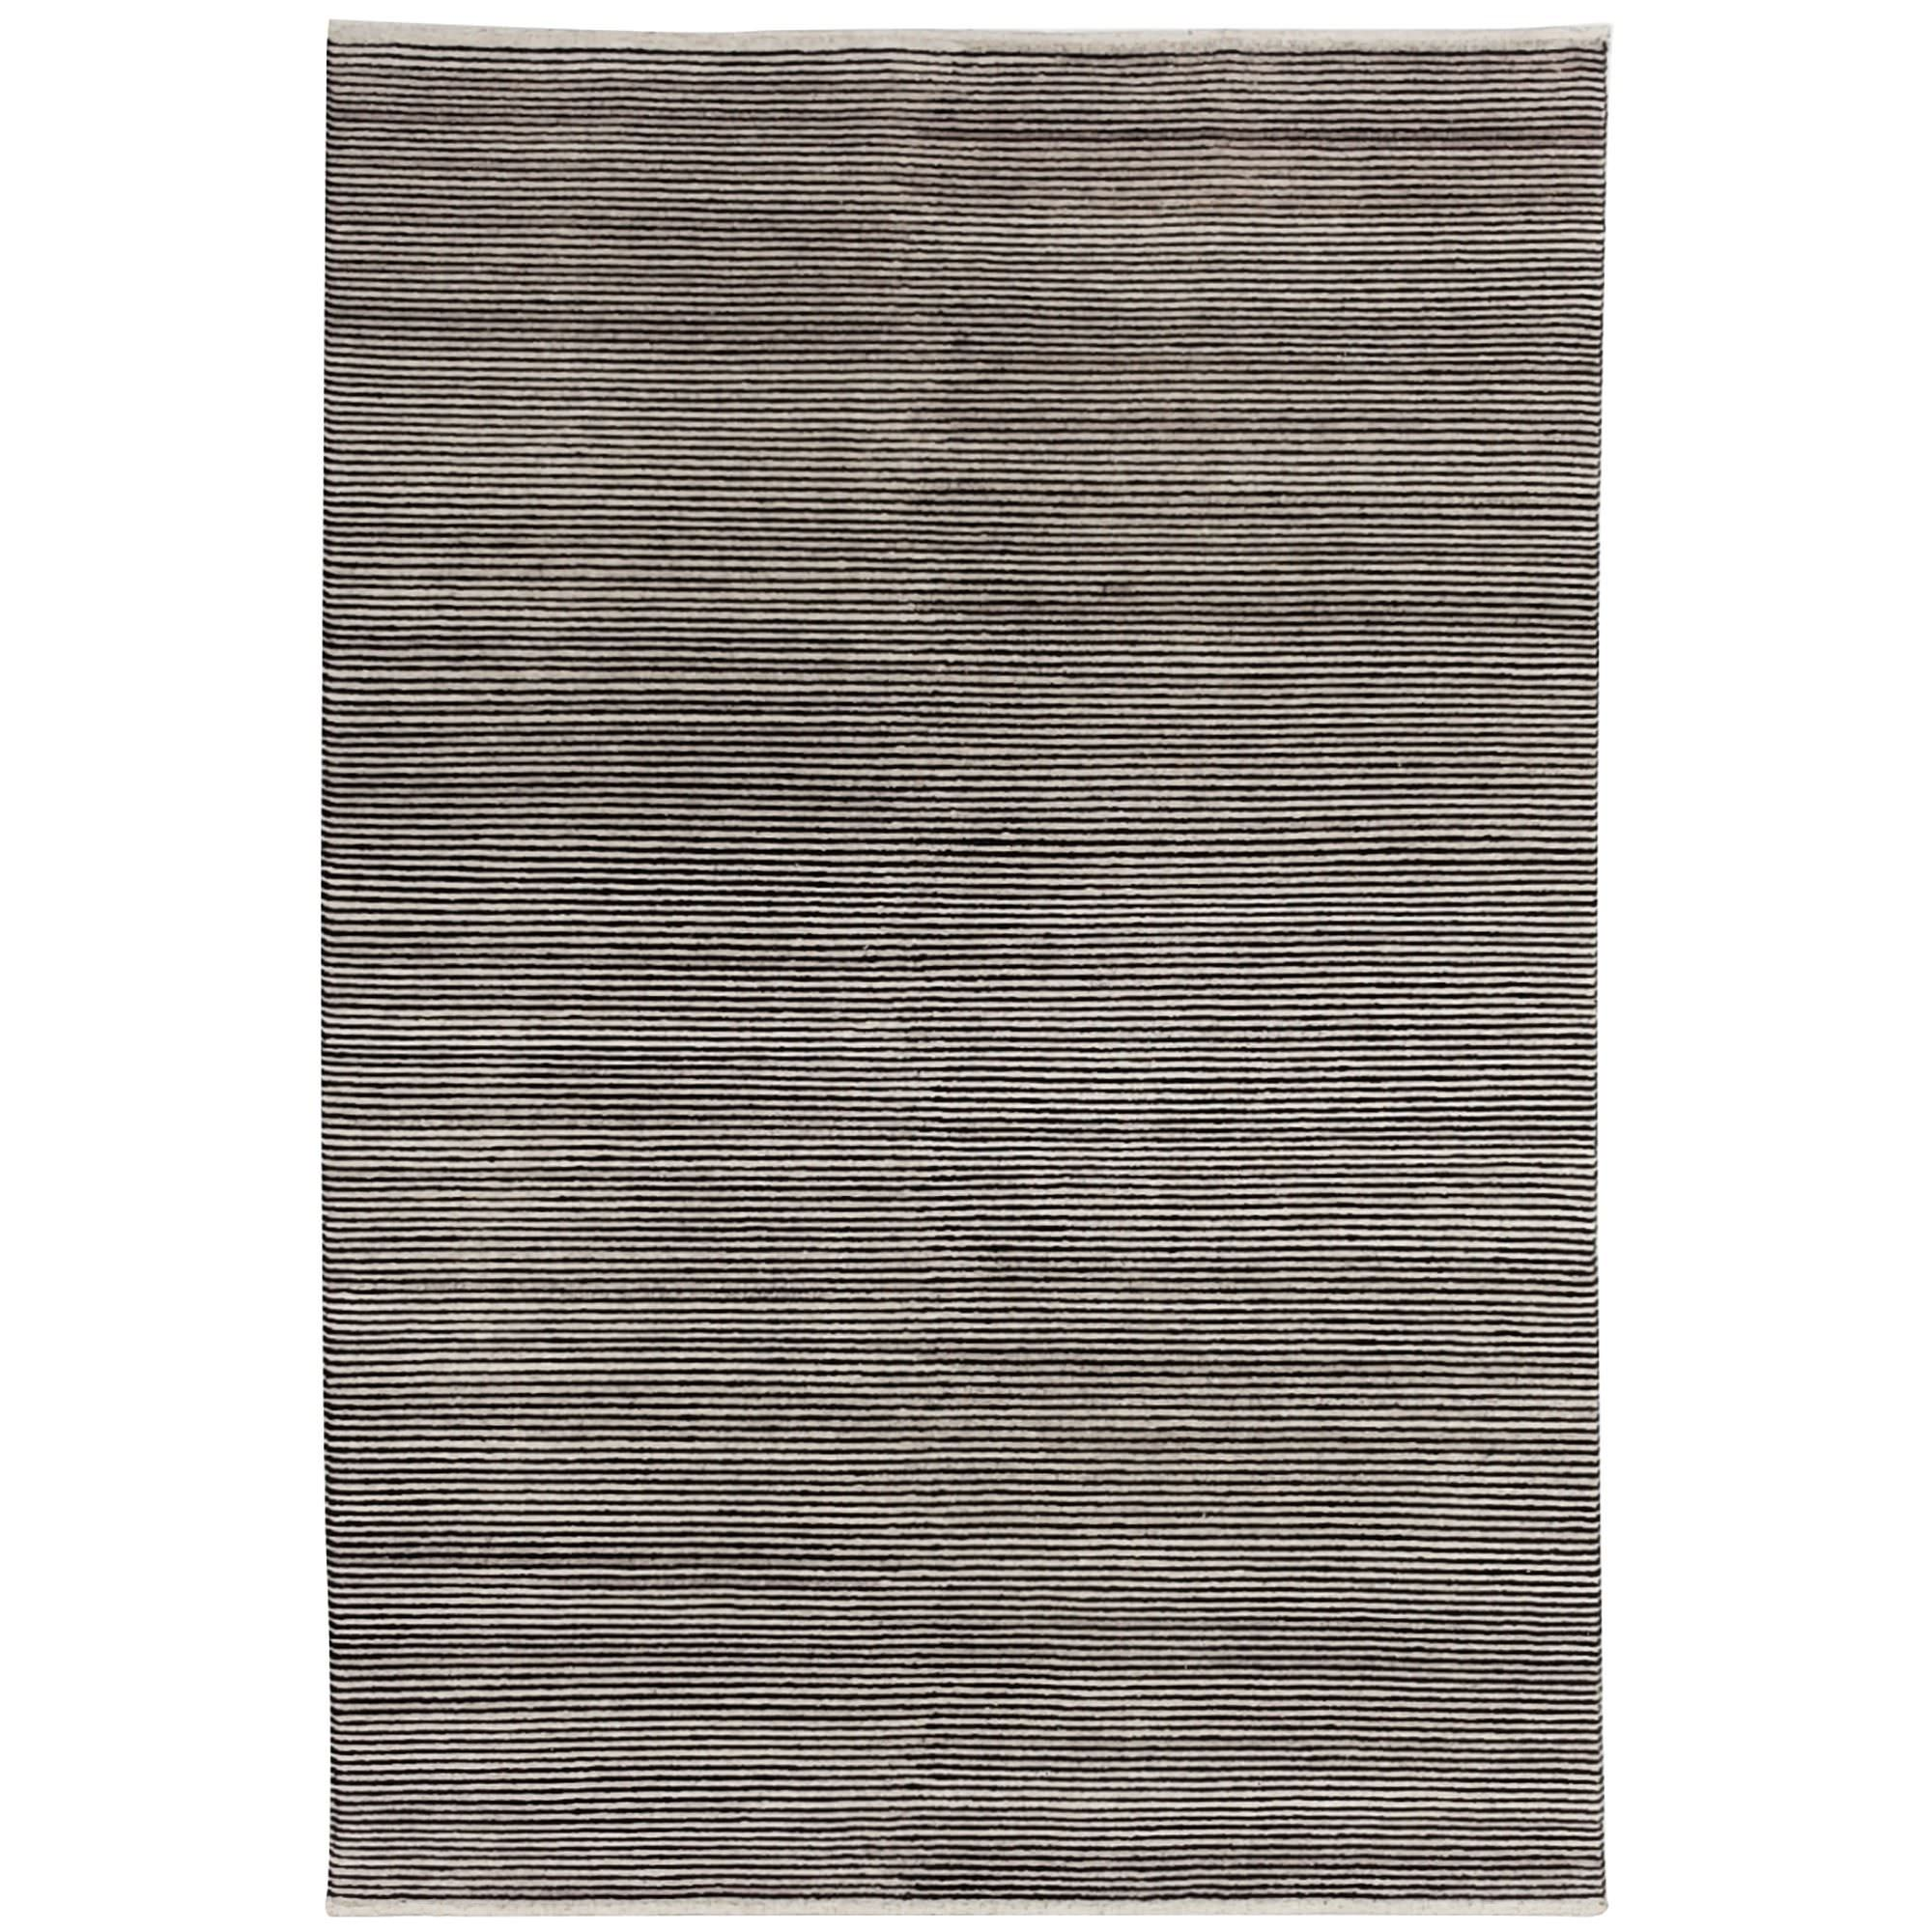 Boheme Hand Tufted Wool Rug, 160x230cm, Charcoal